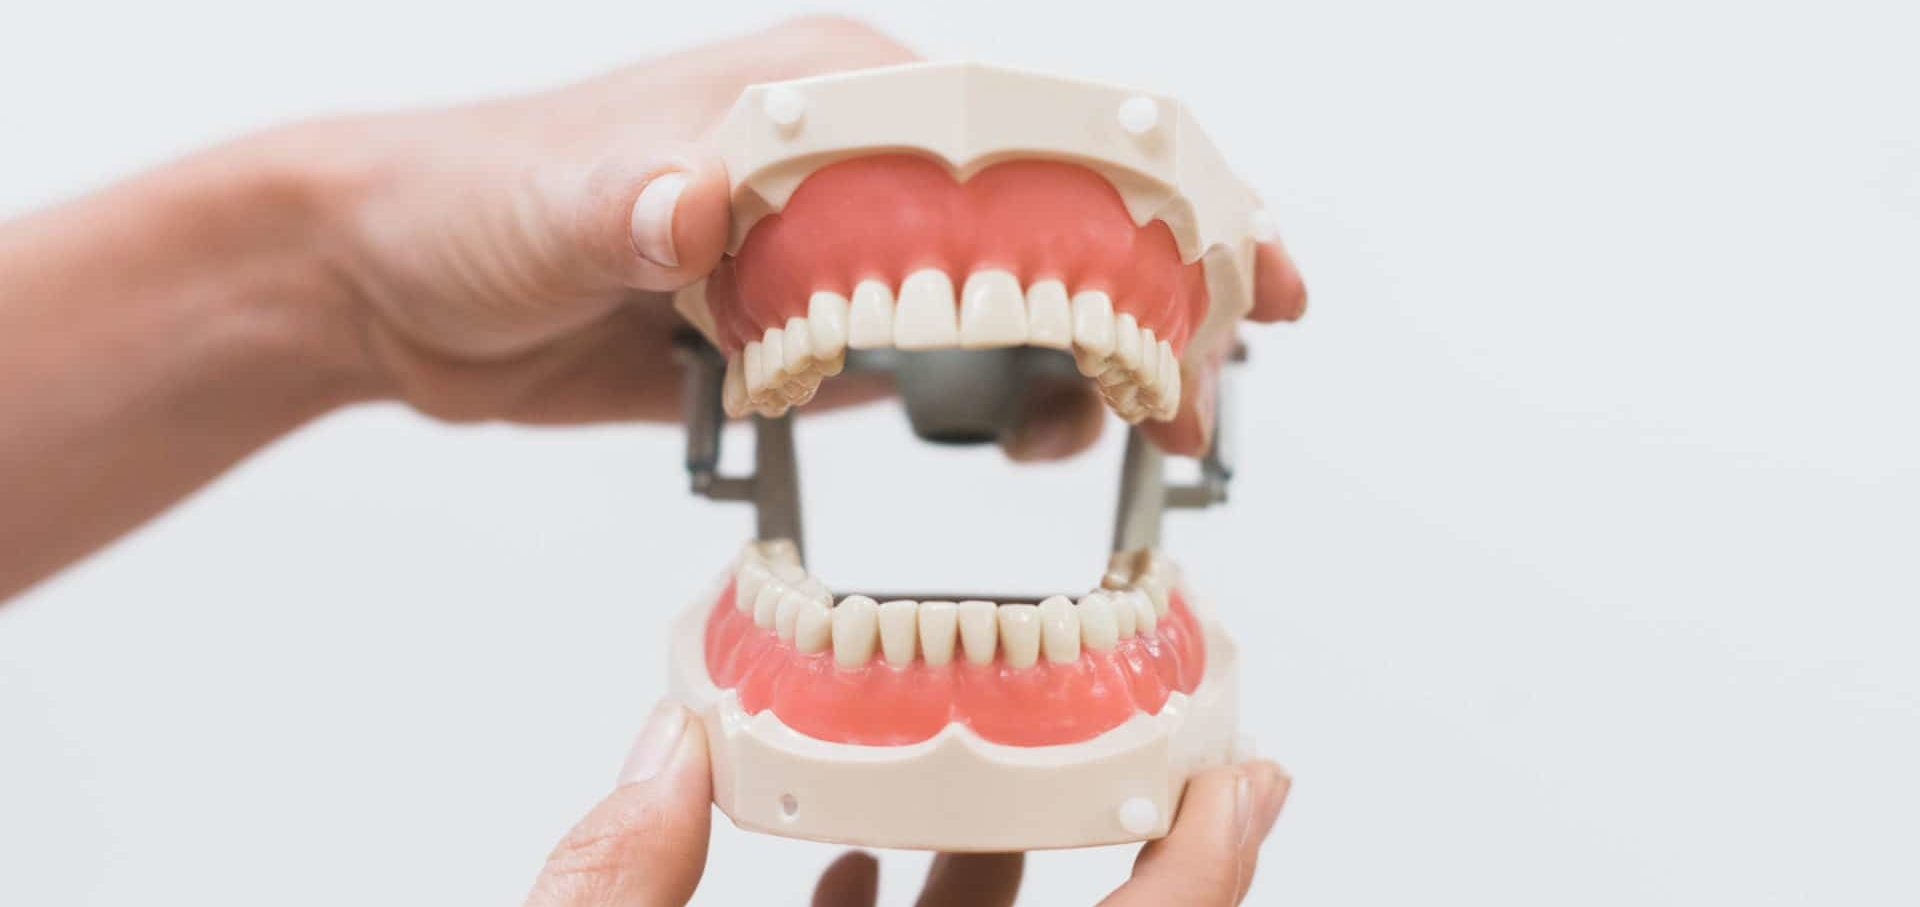 full set of teeth, denture model